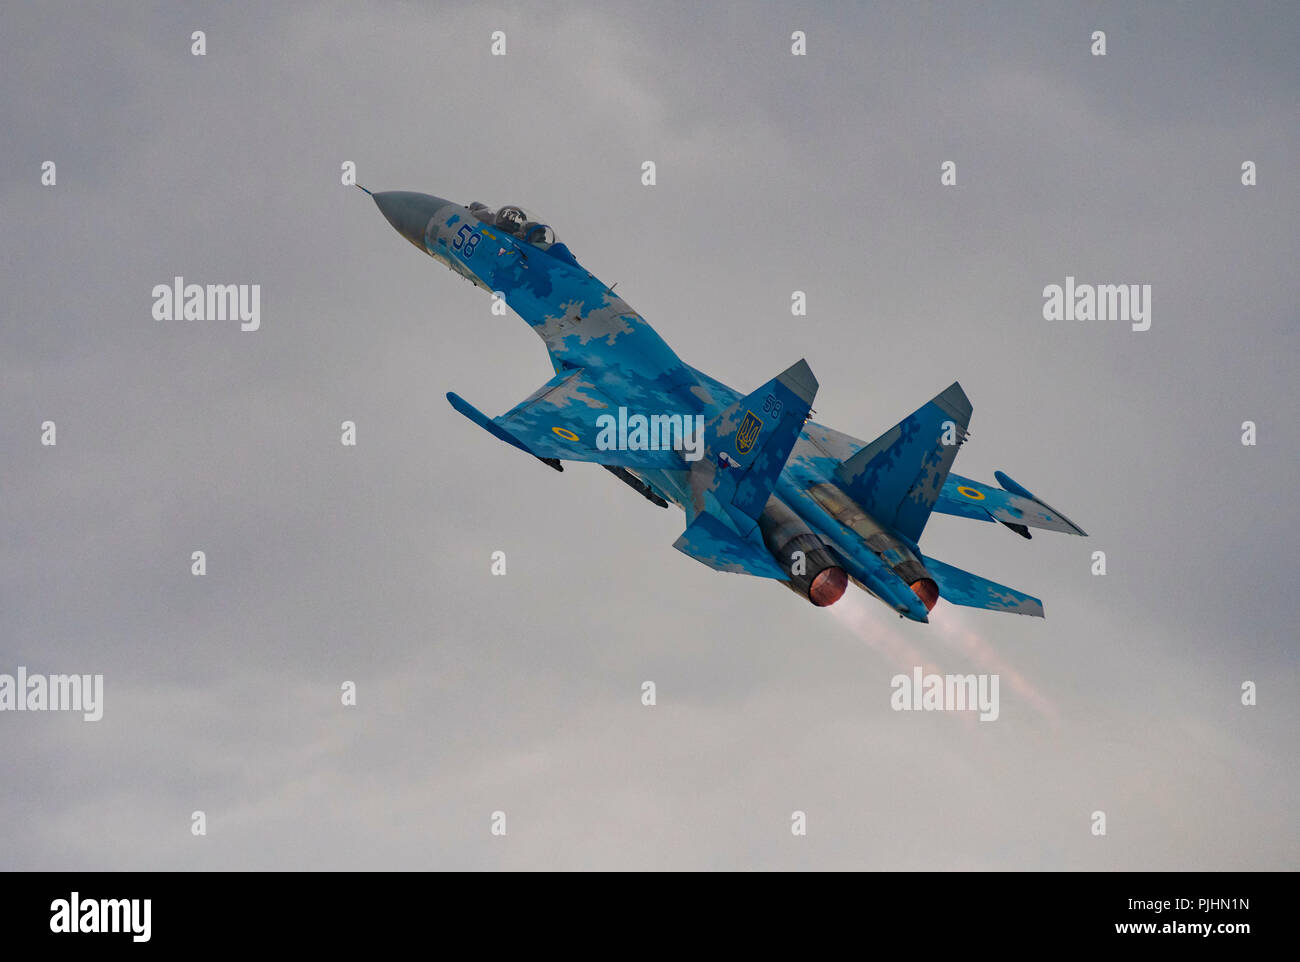 Ukrainian Su-27 Flanker, RIAT 2018, RAF Fairford, UK Stock Photo